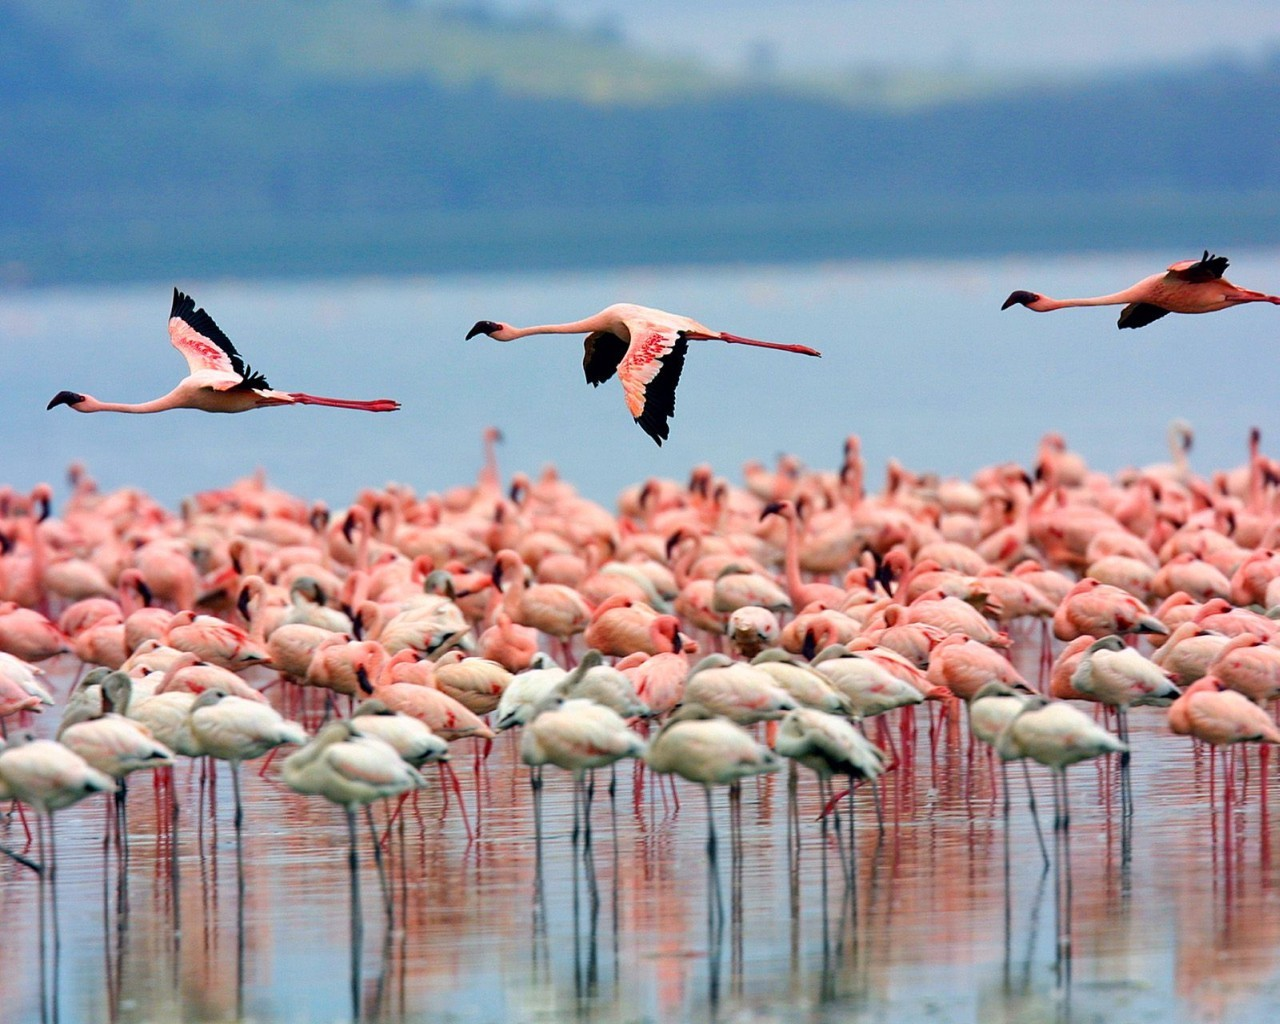 5520 download wallpaper Animals, Birds, Flamingo screensavers and pictures for free